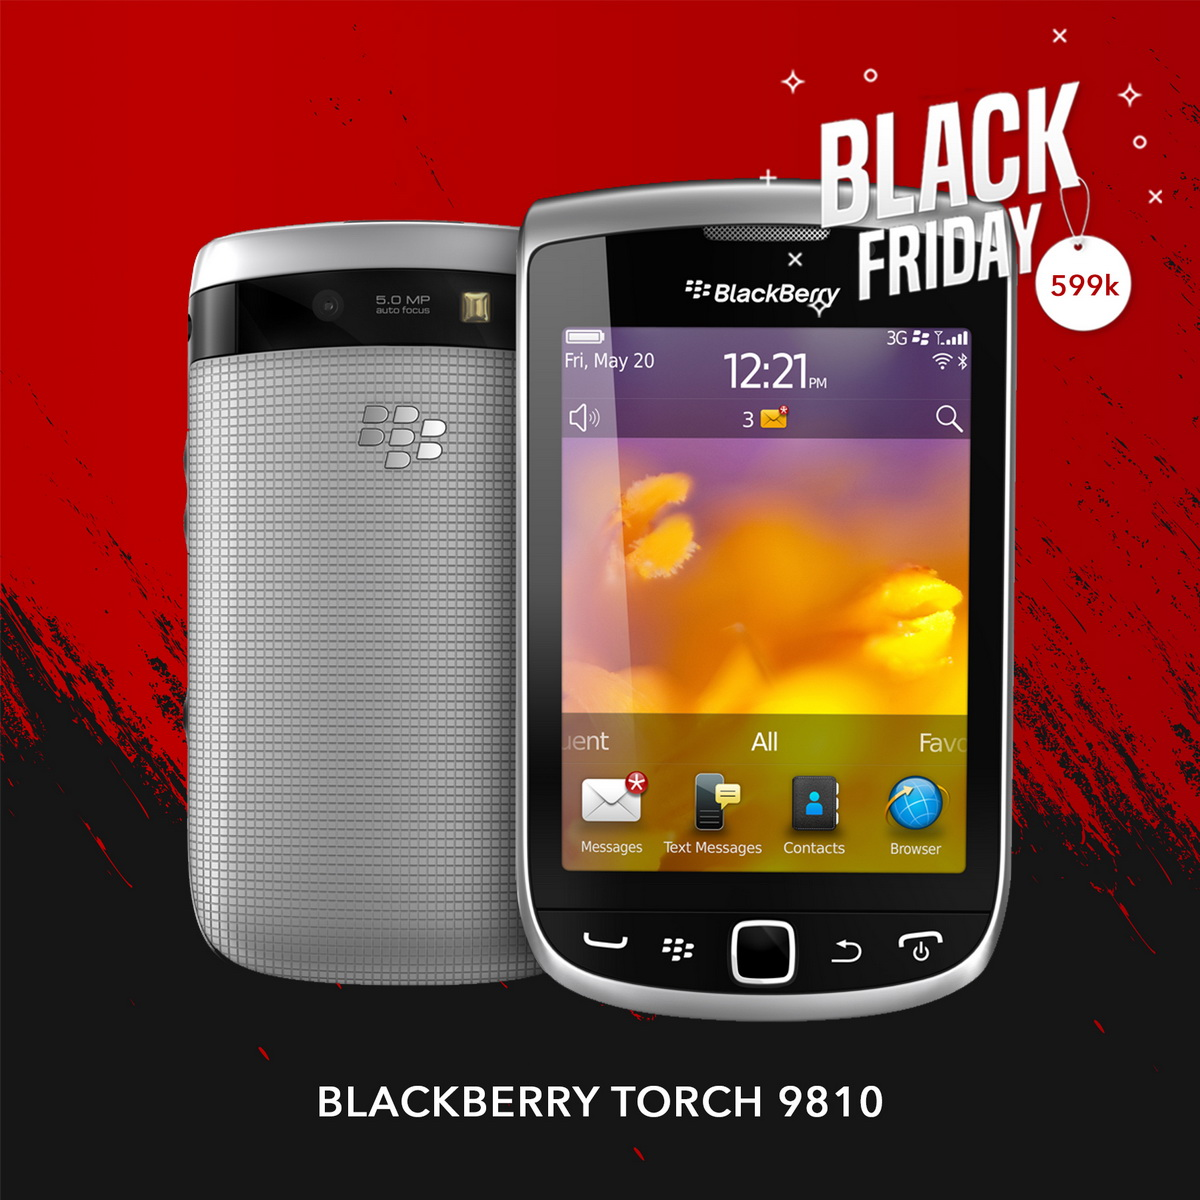 Blackberry Torch 9810 |  Black Friday